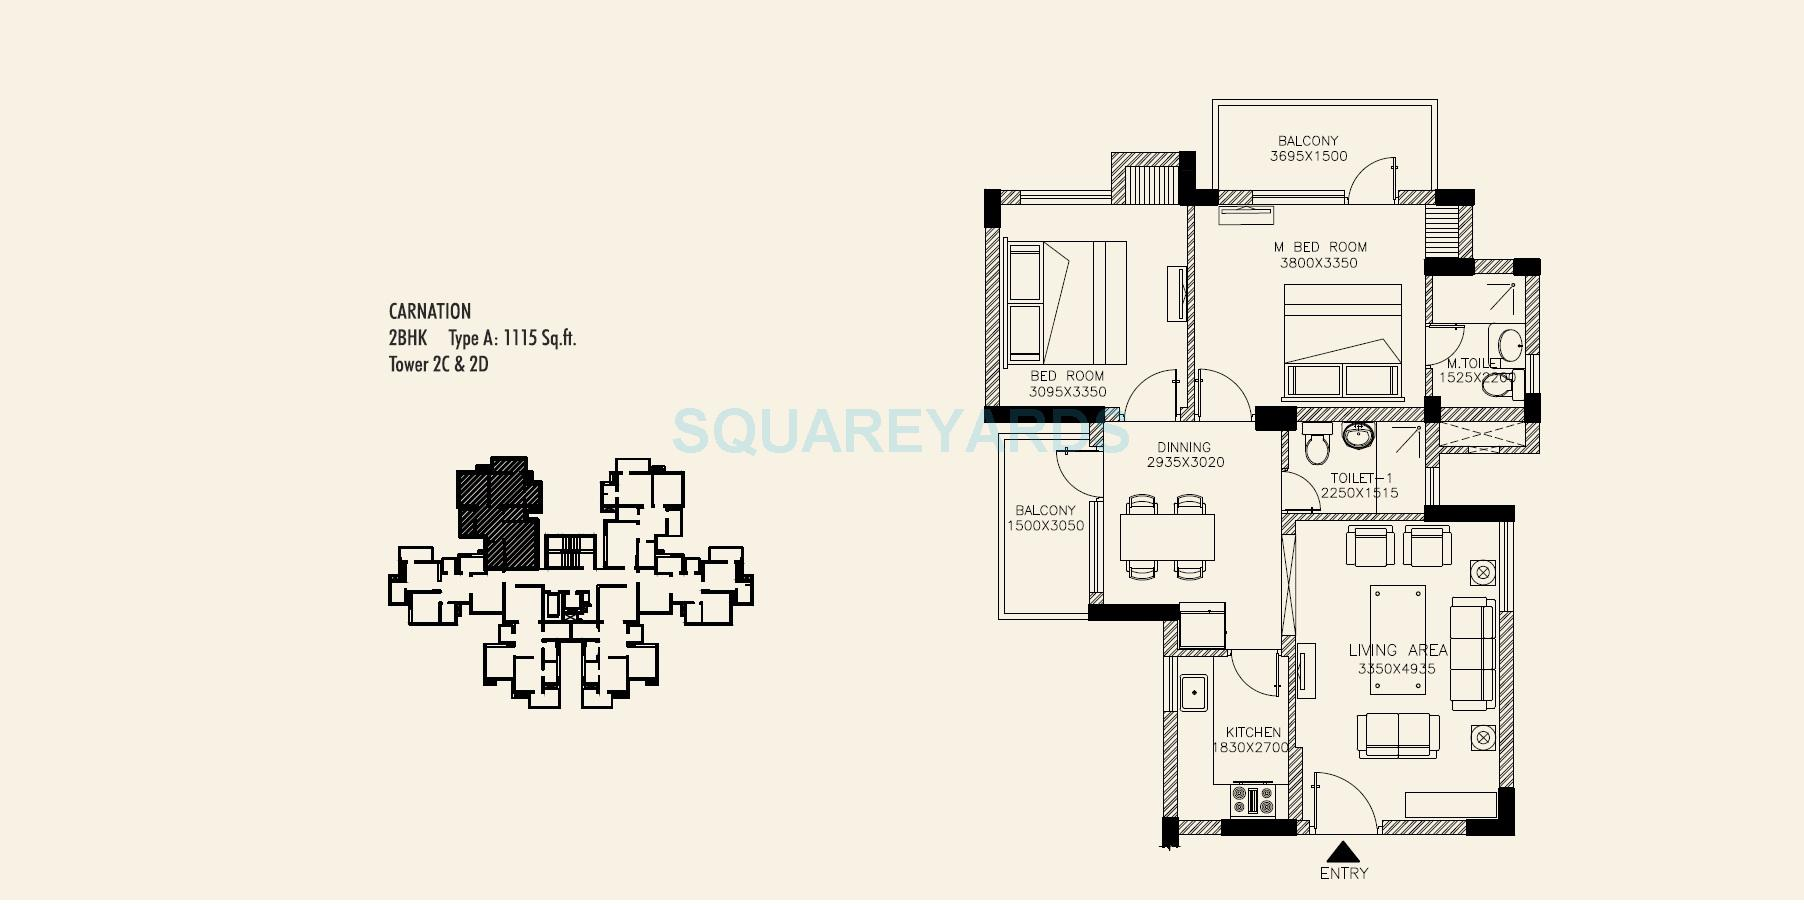 orris carnation residency apartment 2bhk 1115sqft type a 1